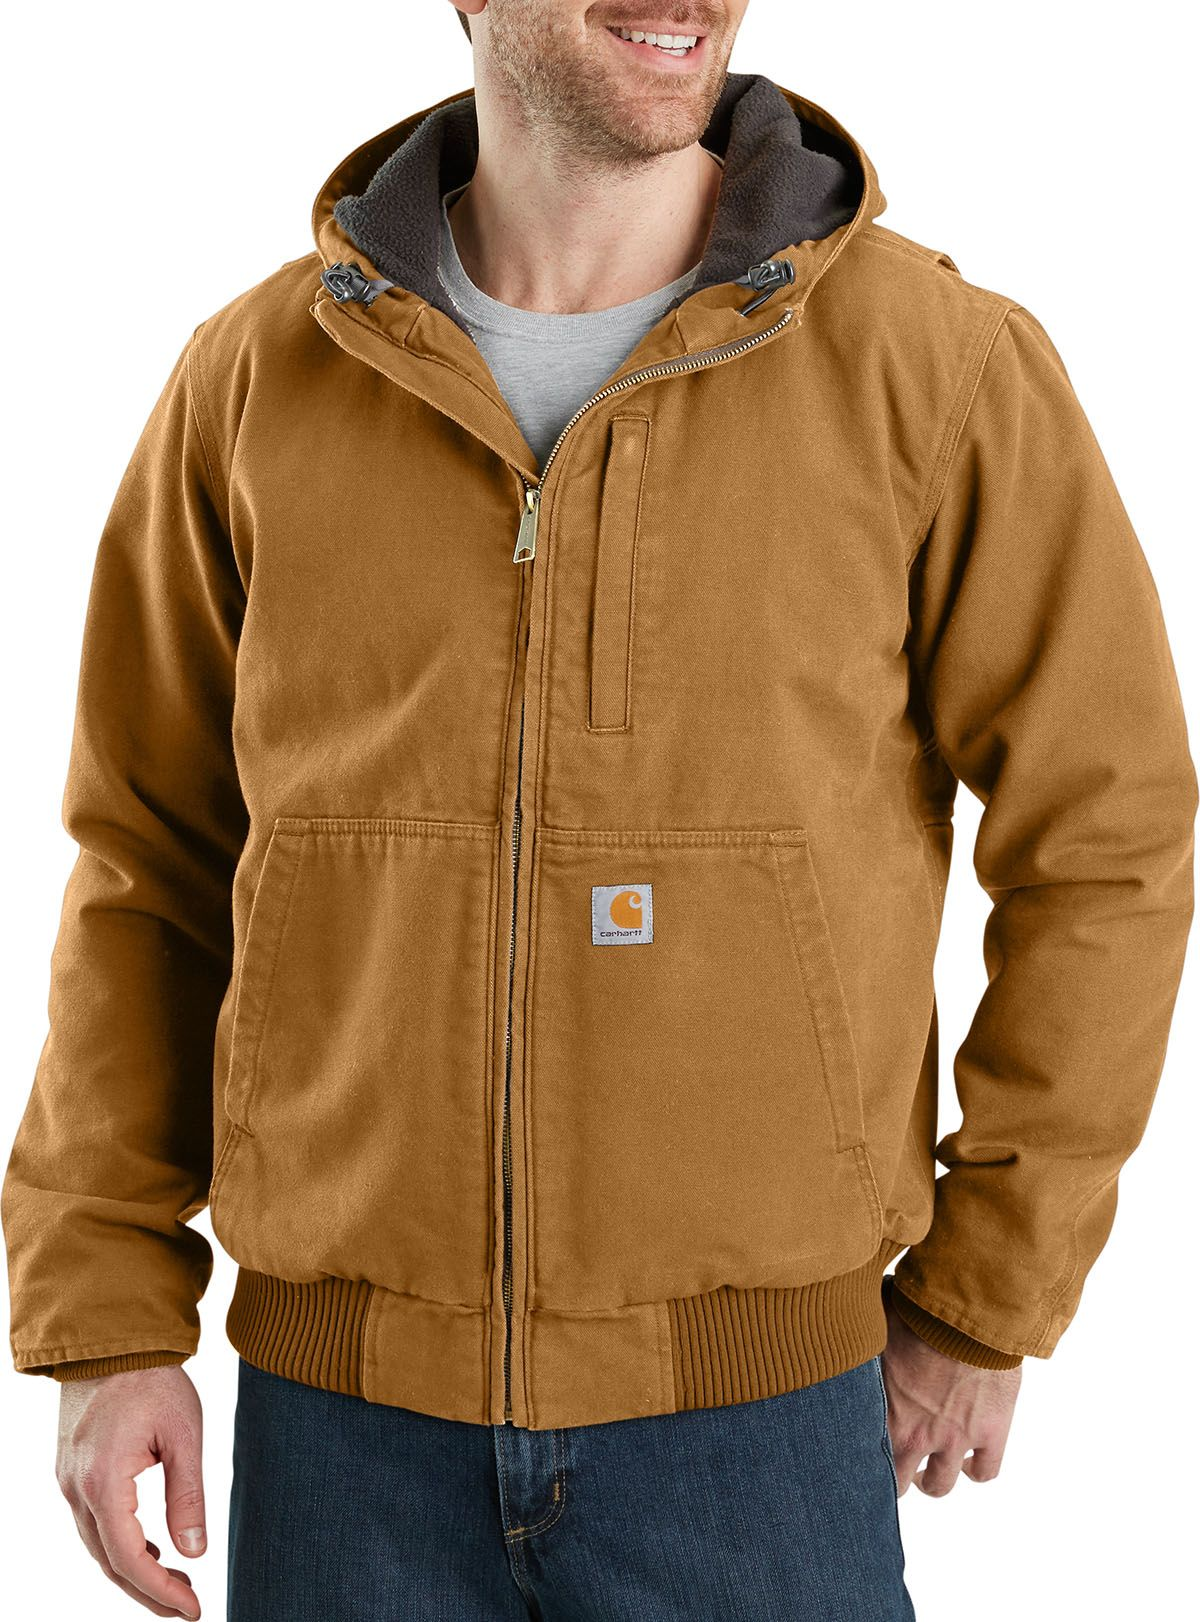 Carhartt jacket brown